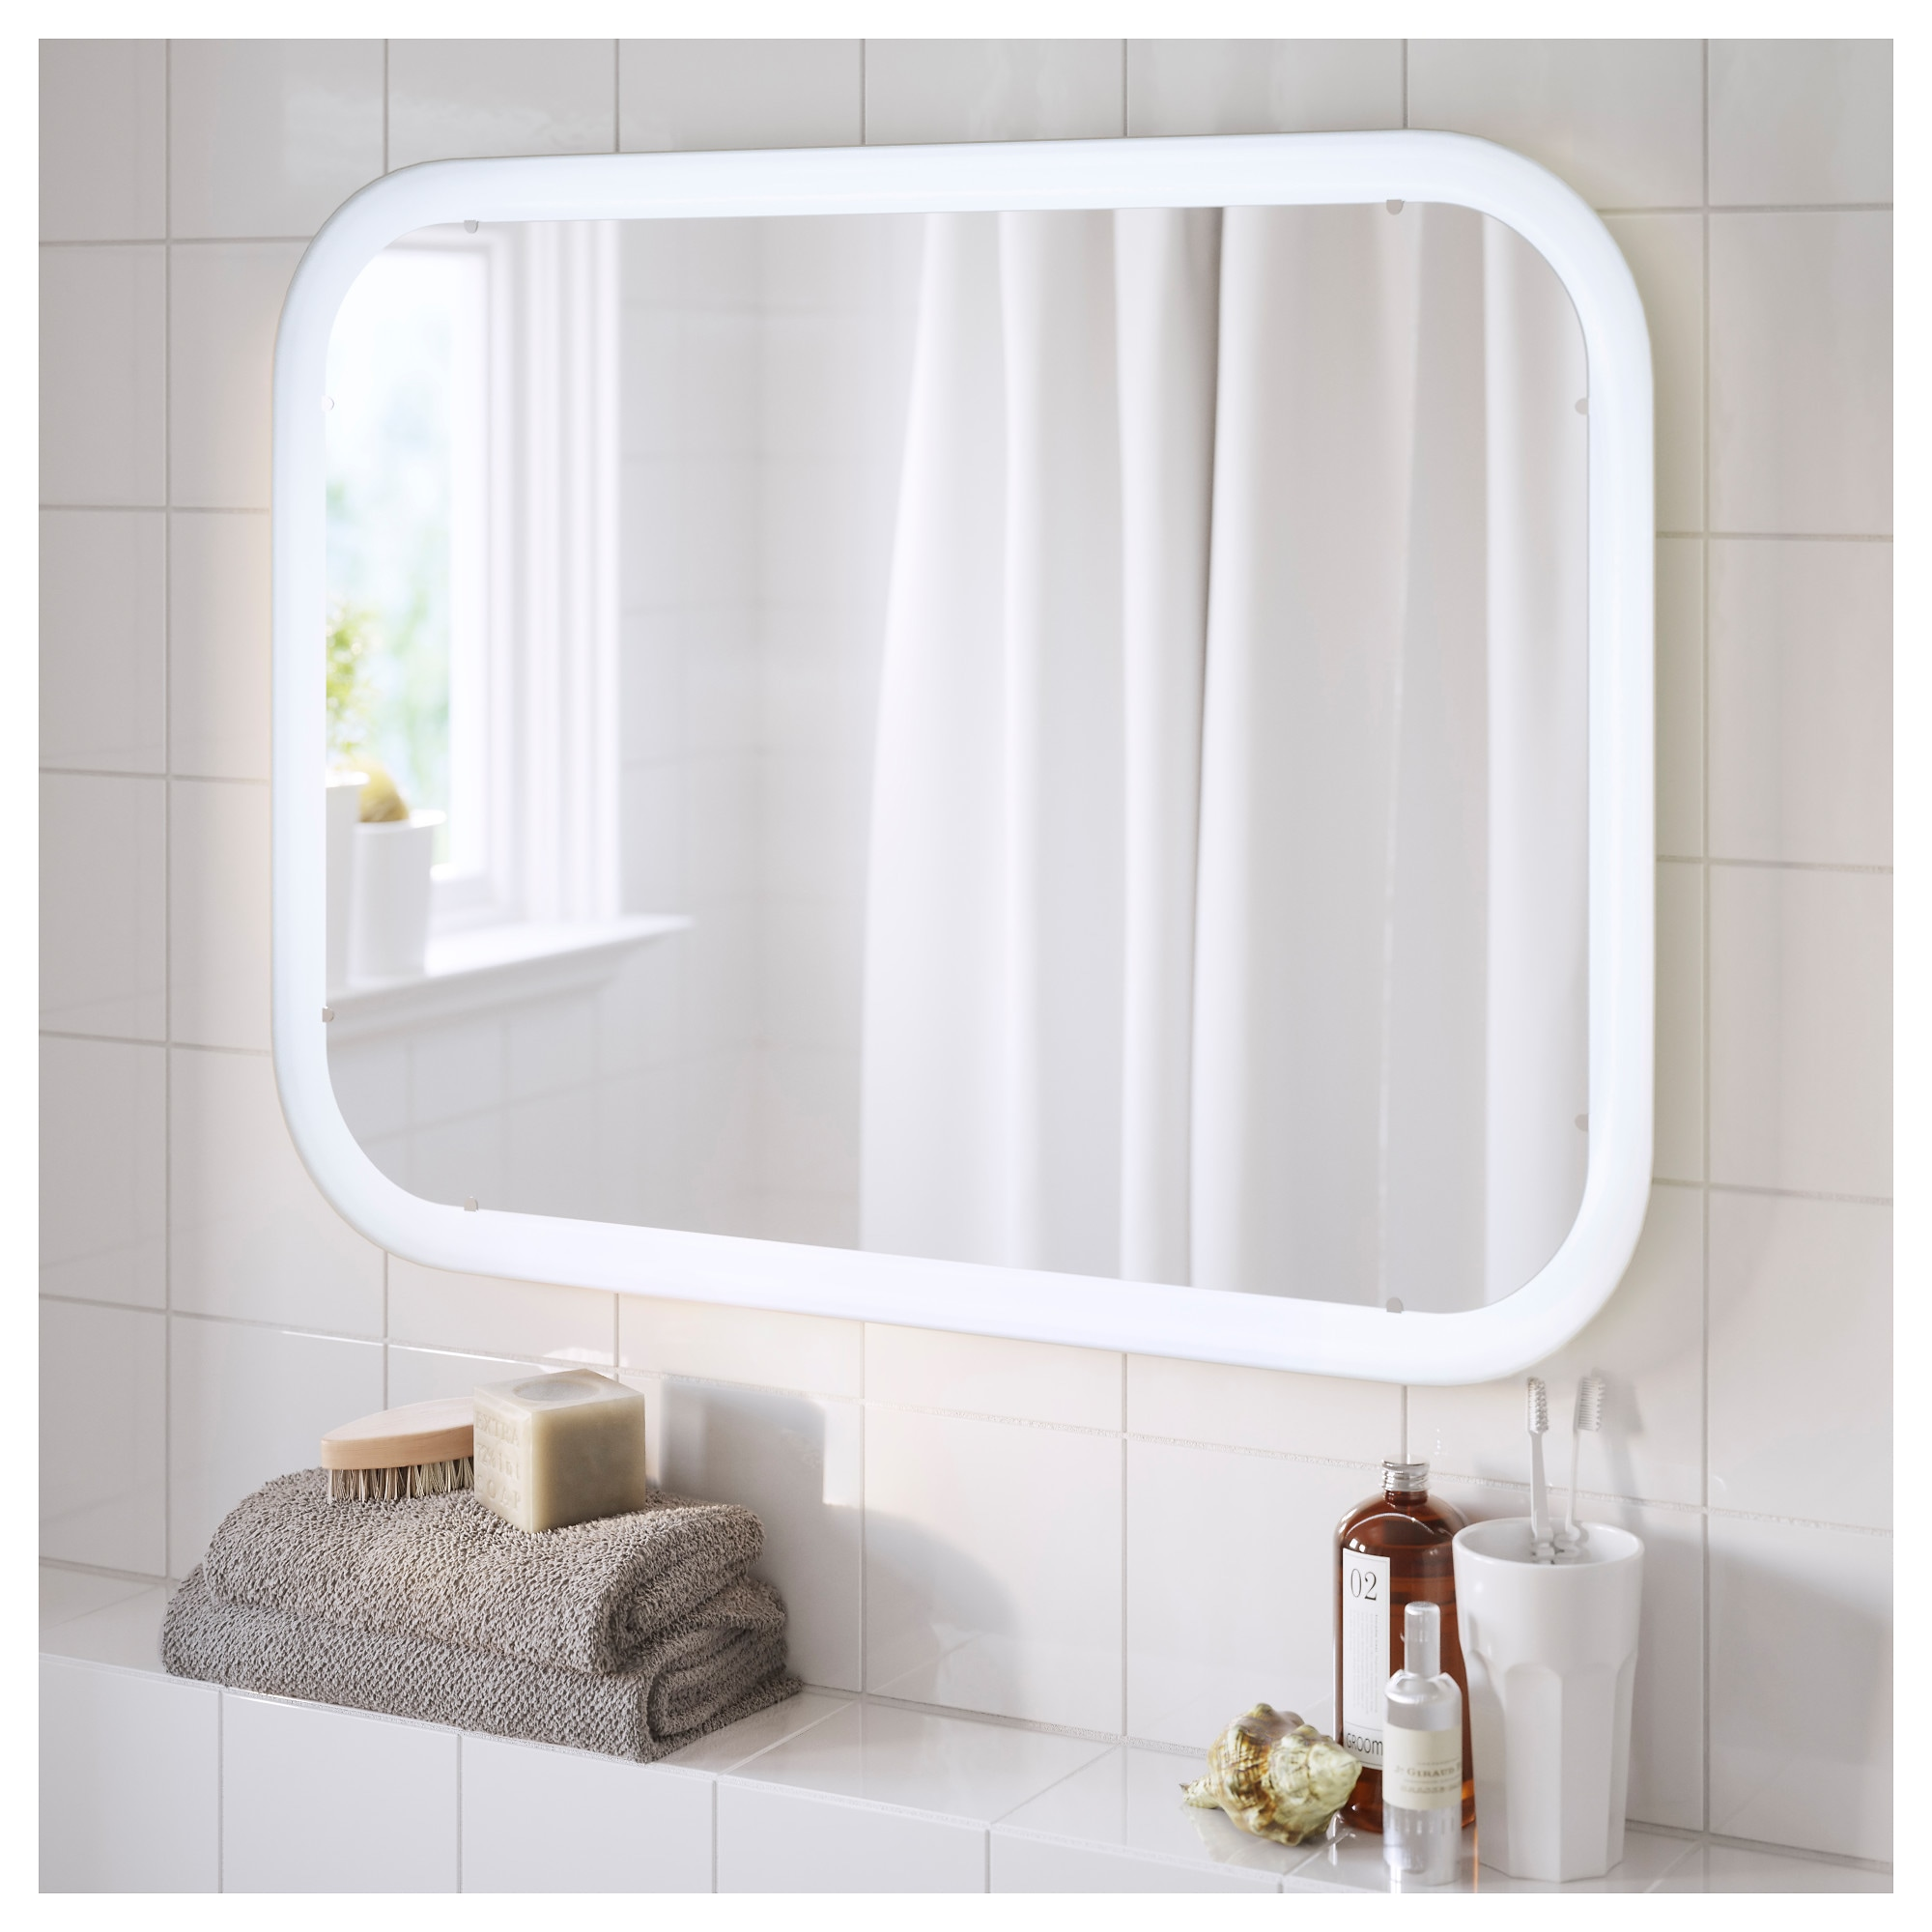 Bathroom Mirrors With Lights Built In storjorm mirror with built-in light - ikea